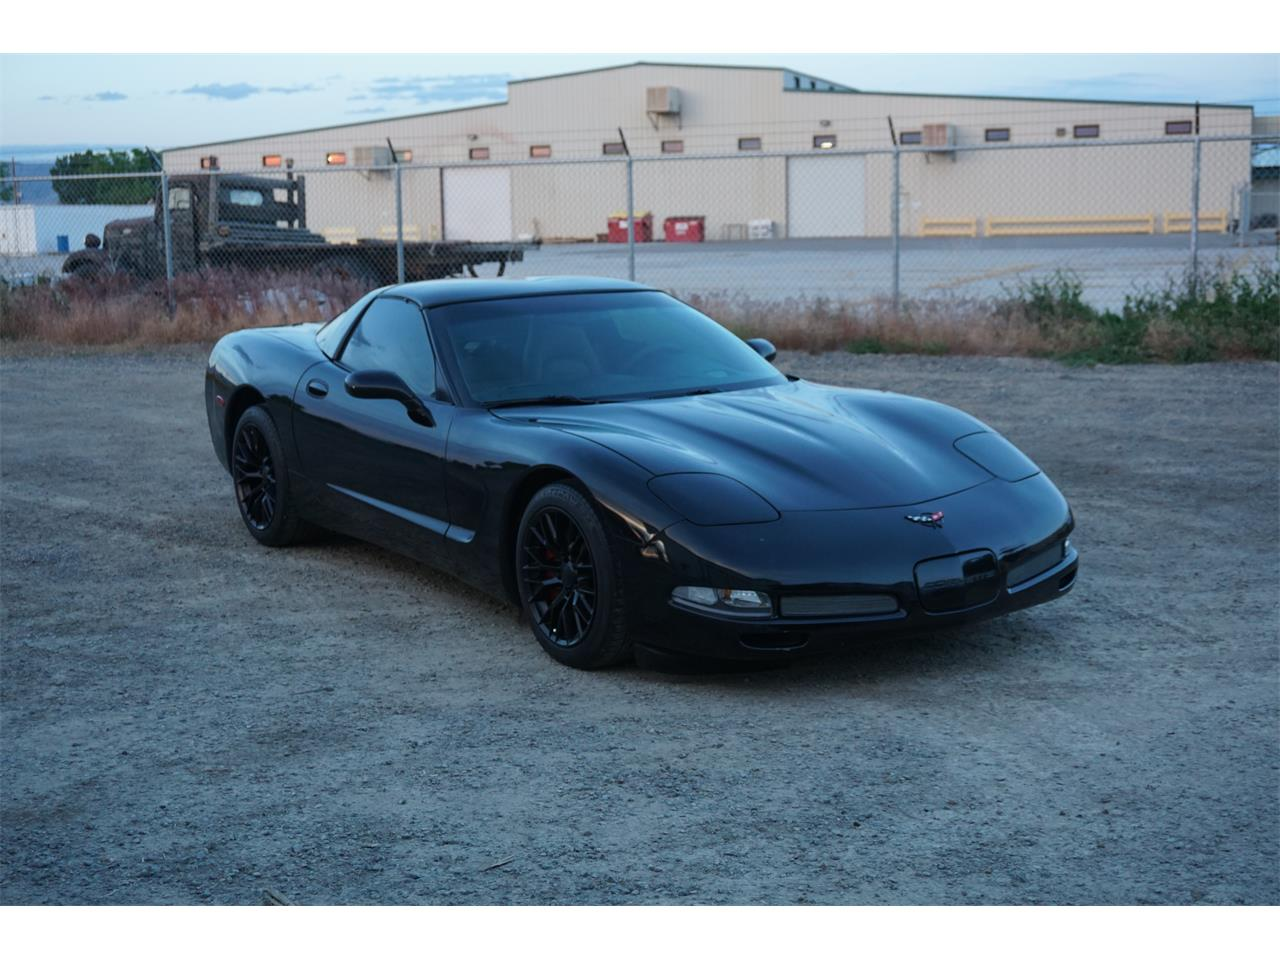 Large Picture of '02 Corvette located in Colorado Offered by a Private Seller - Q8JM